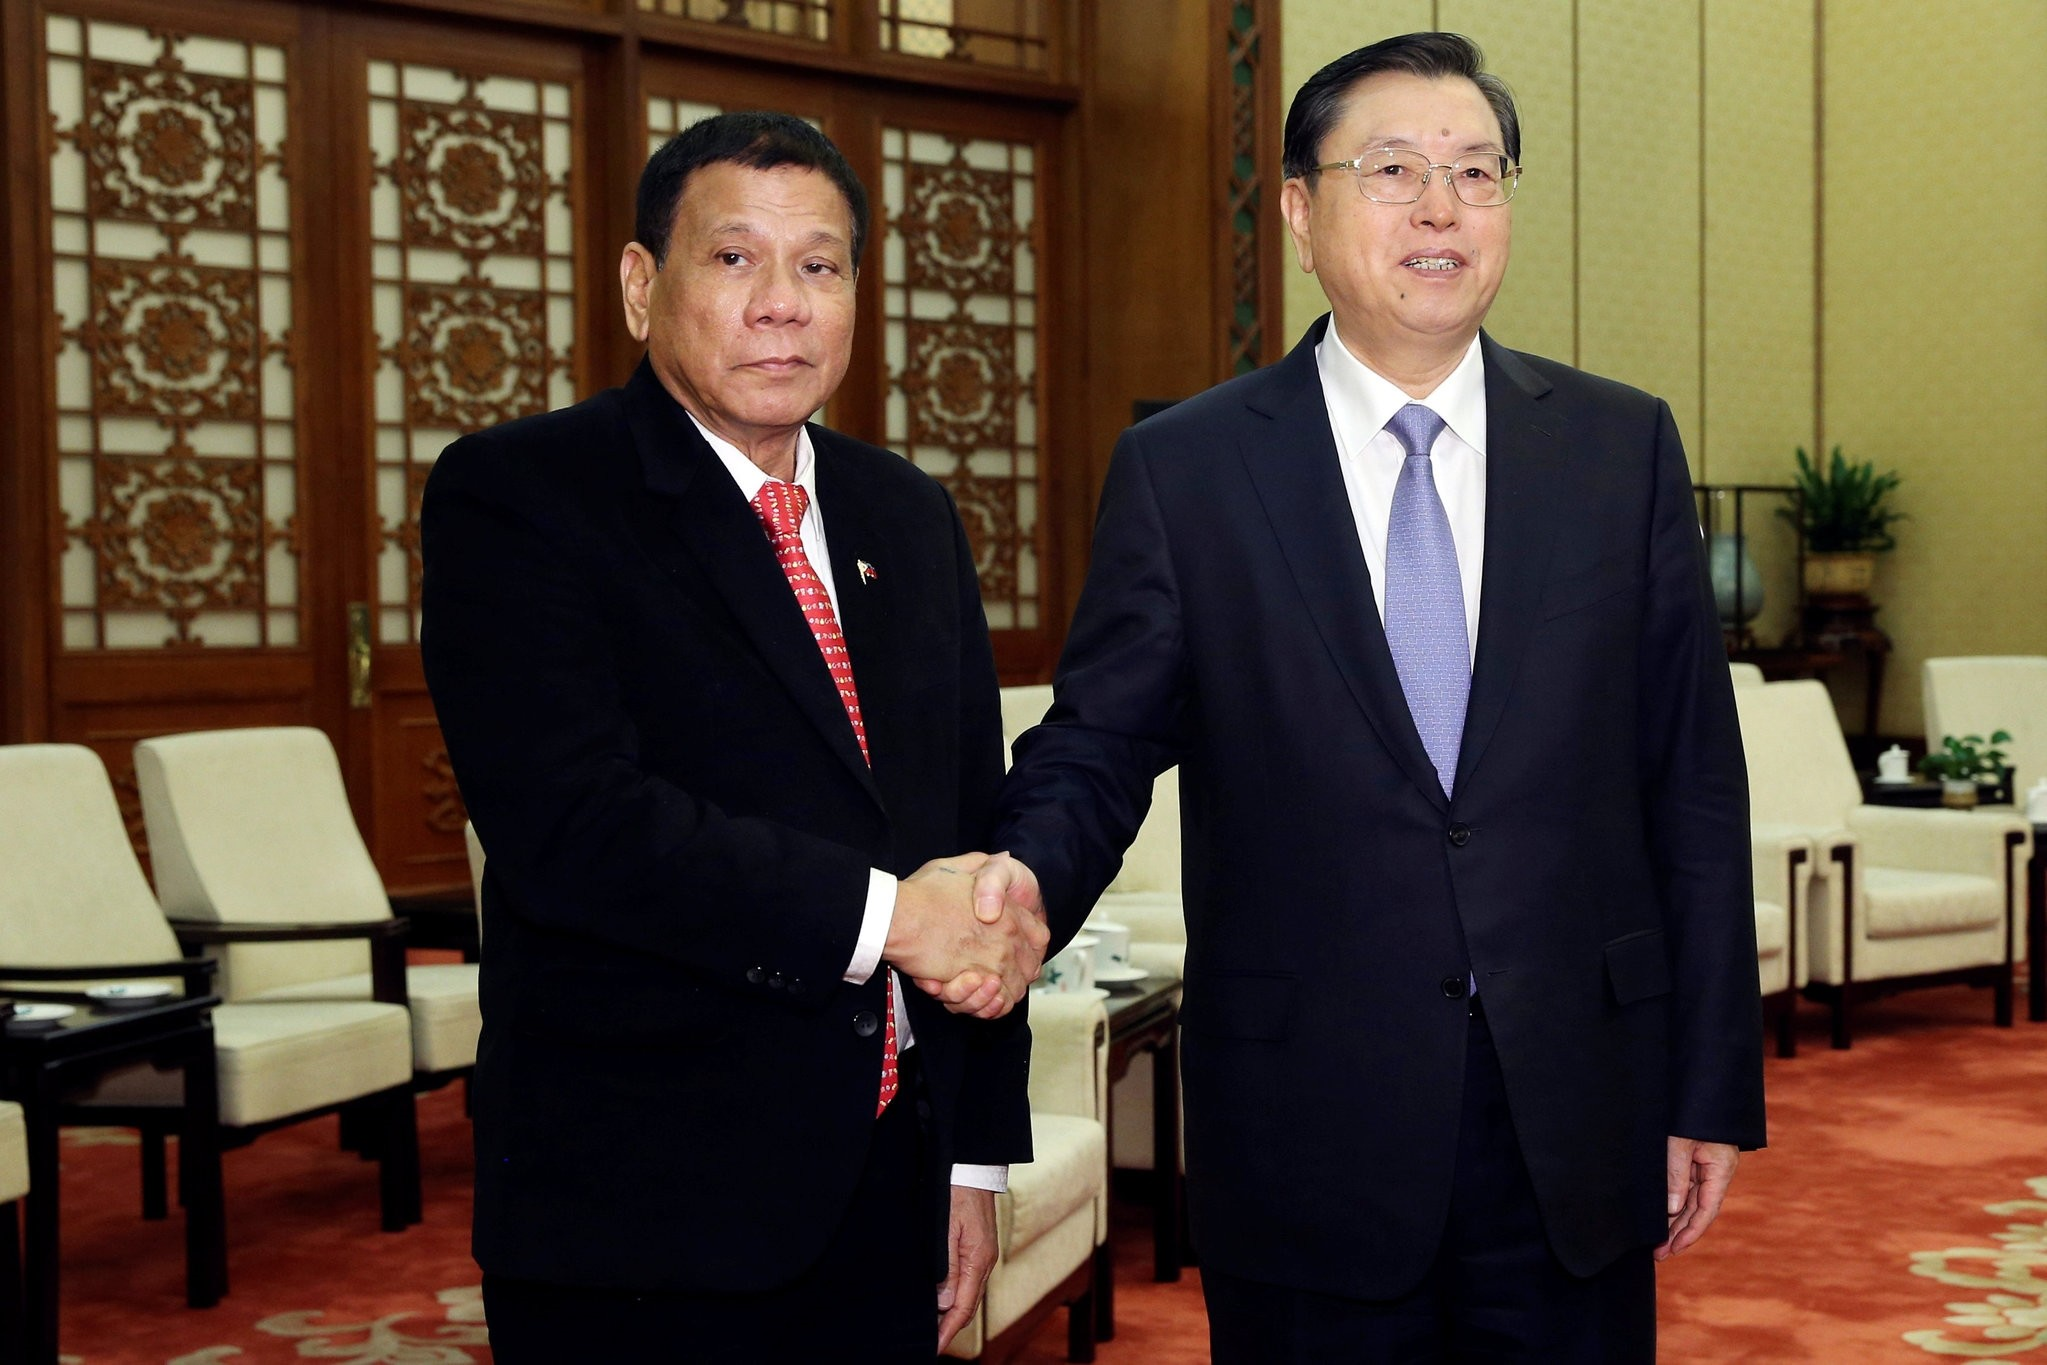 Philippines President Rodrigo Duterte (L) shakes hands with Zhang Dejiang, Chairman of the Standing Committee of the National People's Congress of China ahead of a meeting at the Great Hall of the People in Beijing, China, 20.10.2016. (Reuters Photo)